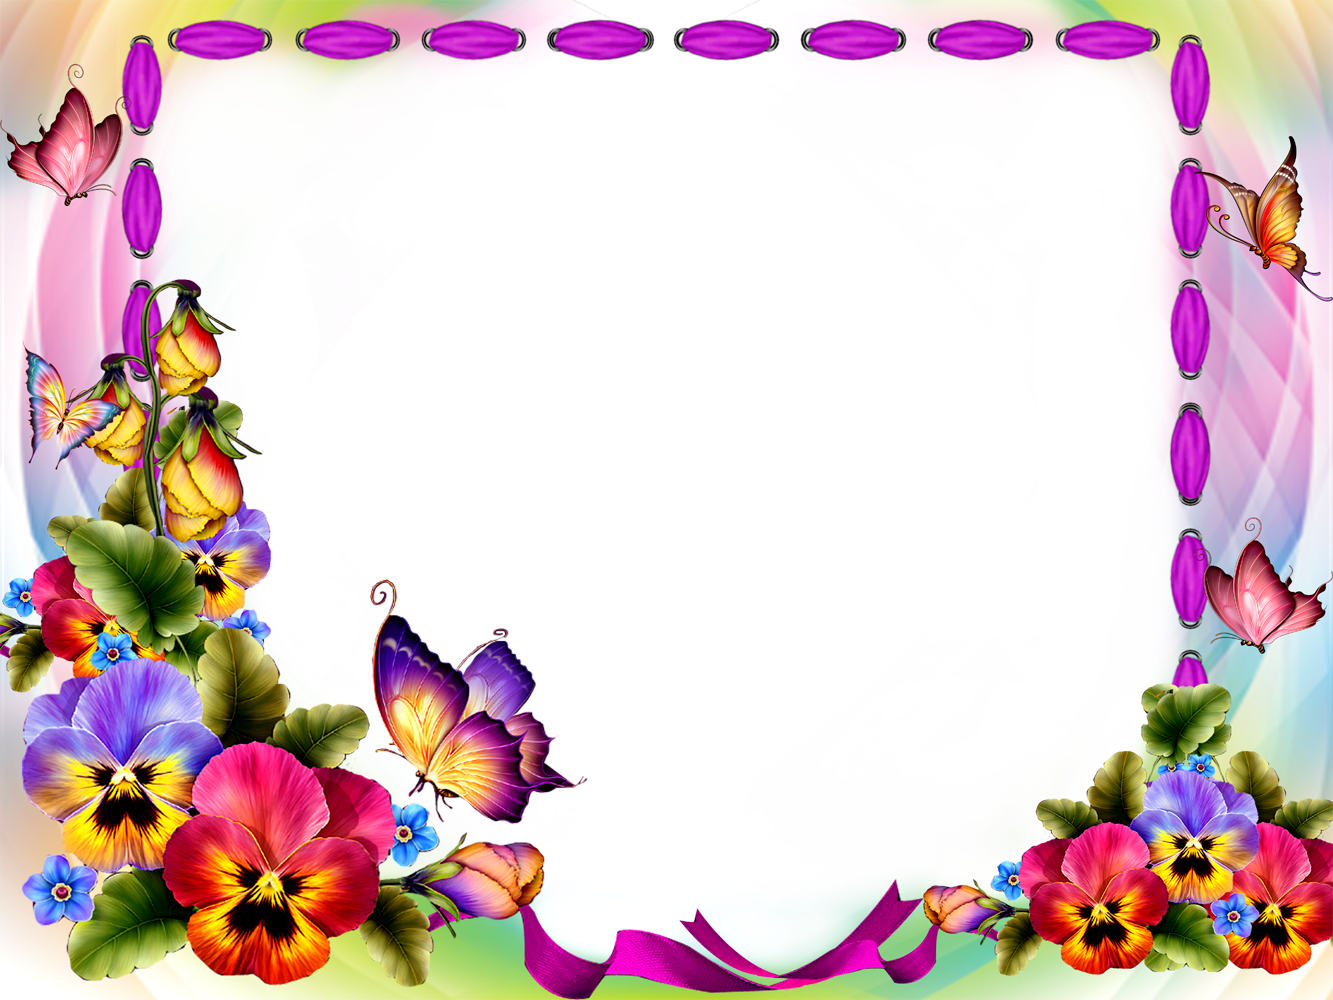 Frame png with flower and butterfly, frame with buttterfly, frame with